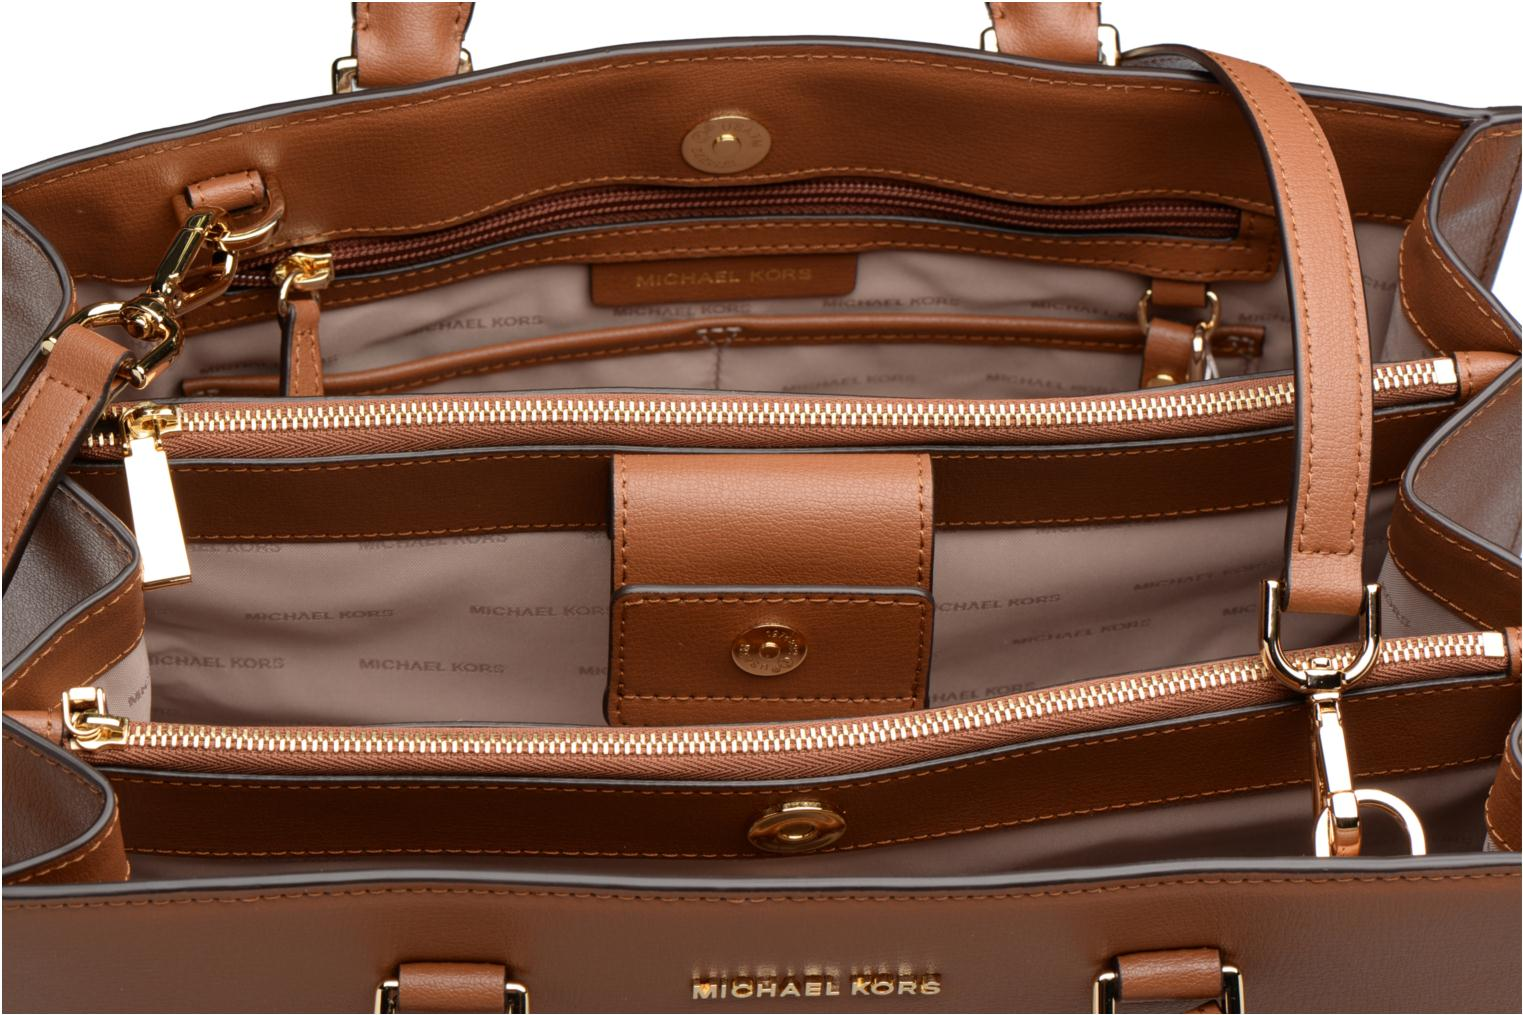 Sutton LG Gusset Satchel 230 Luggage